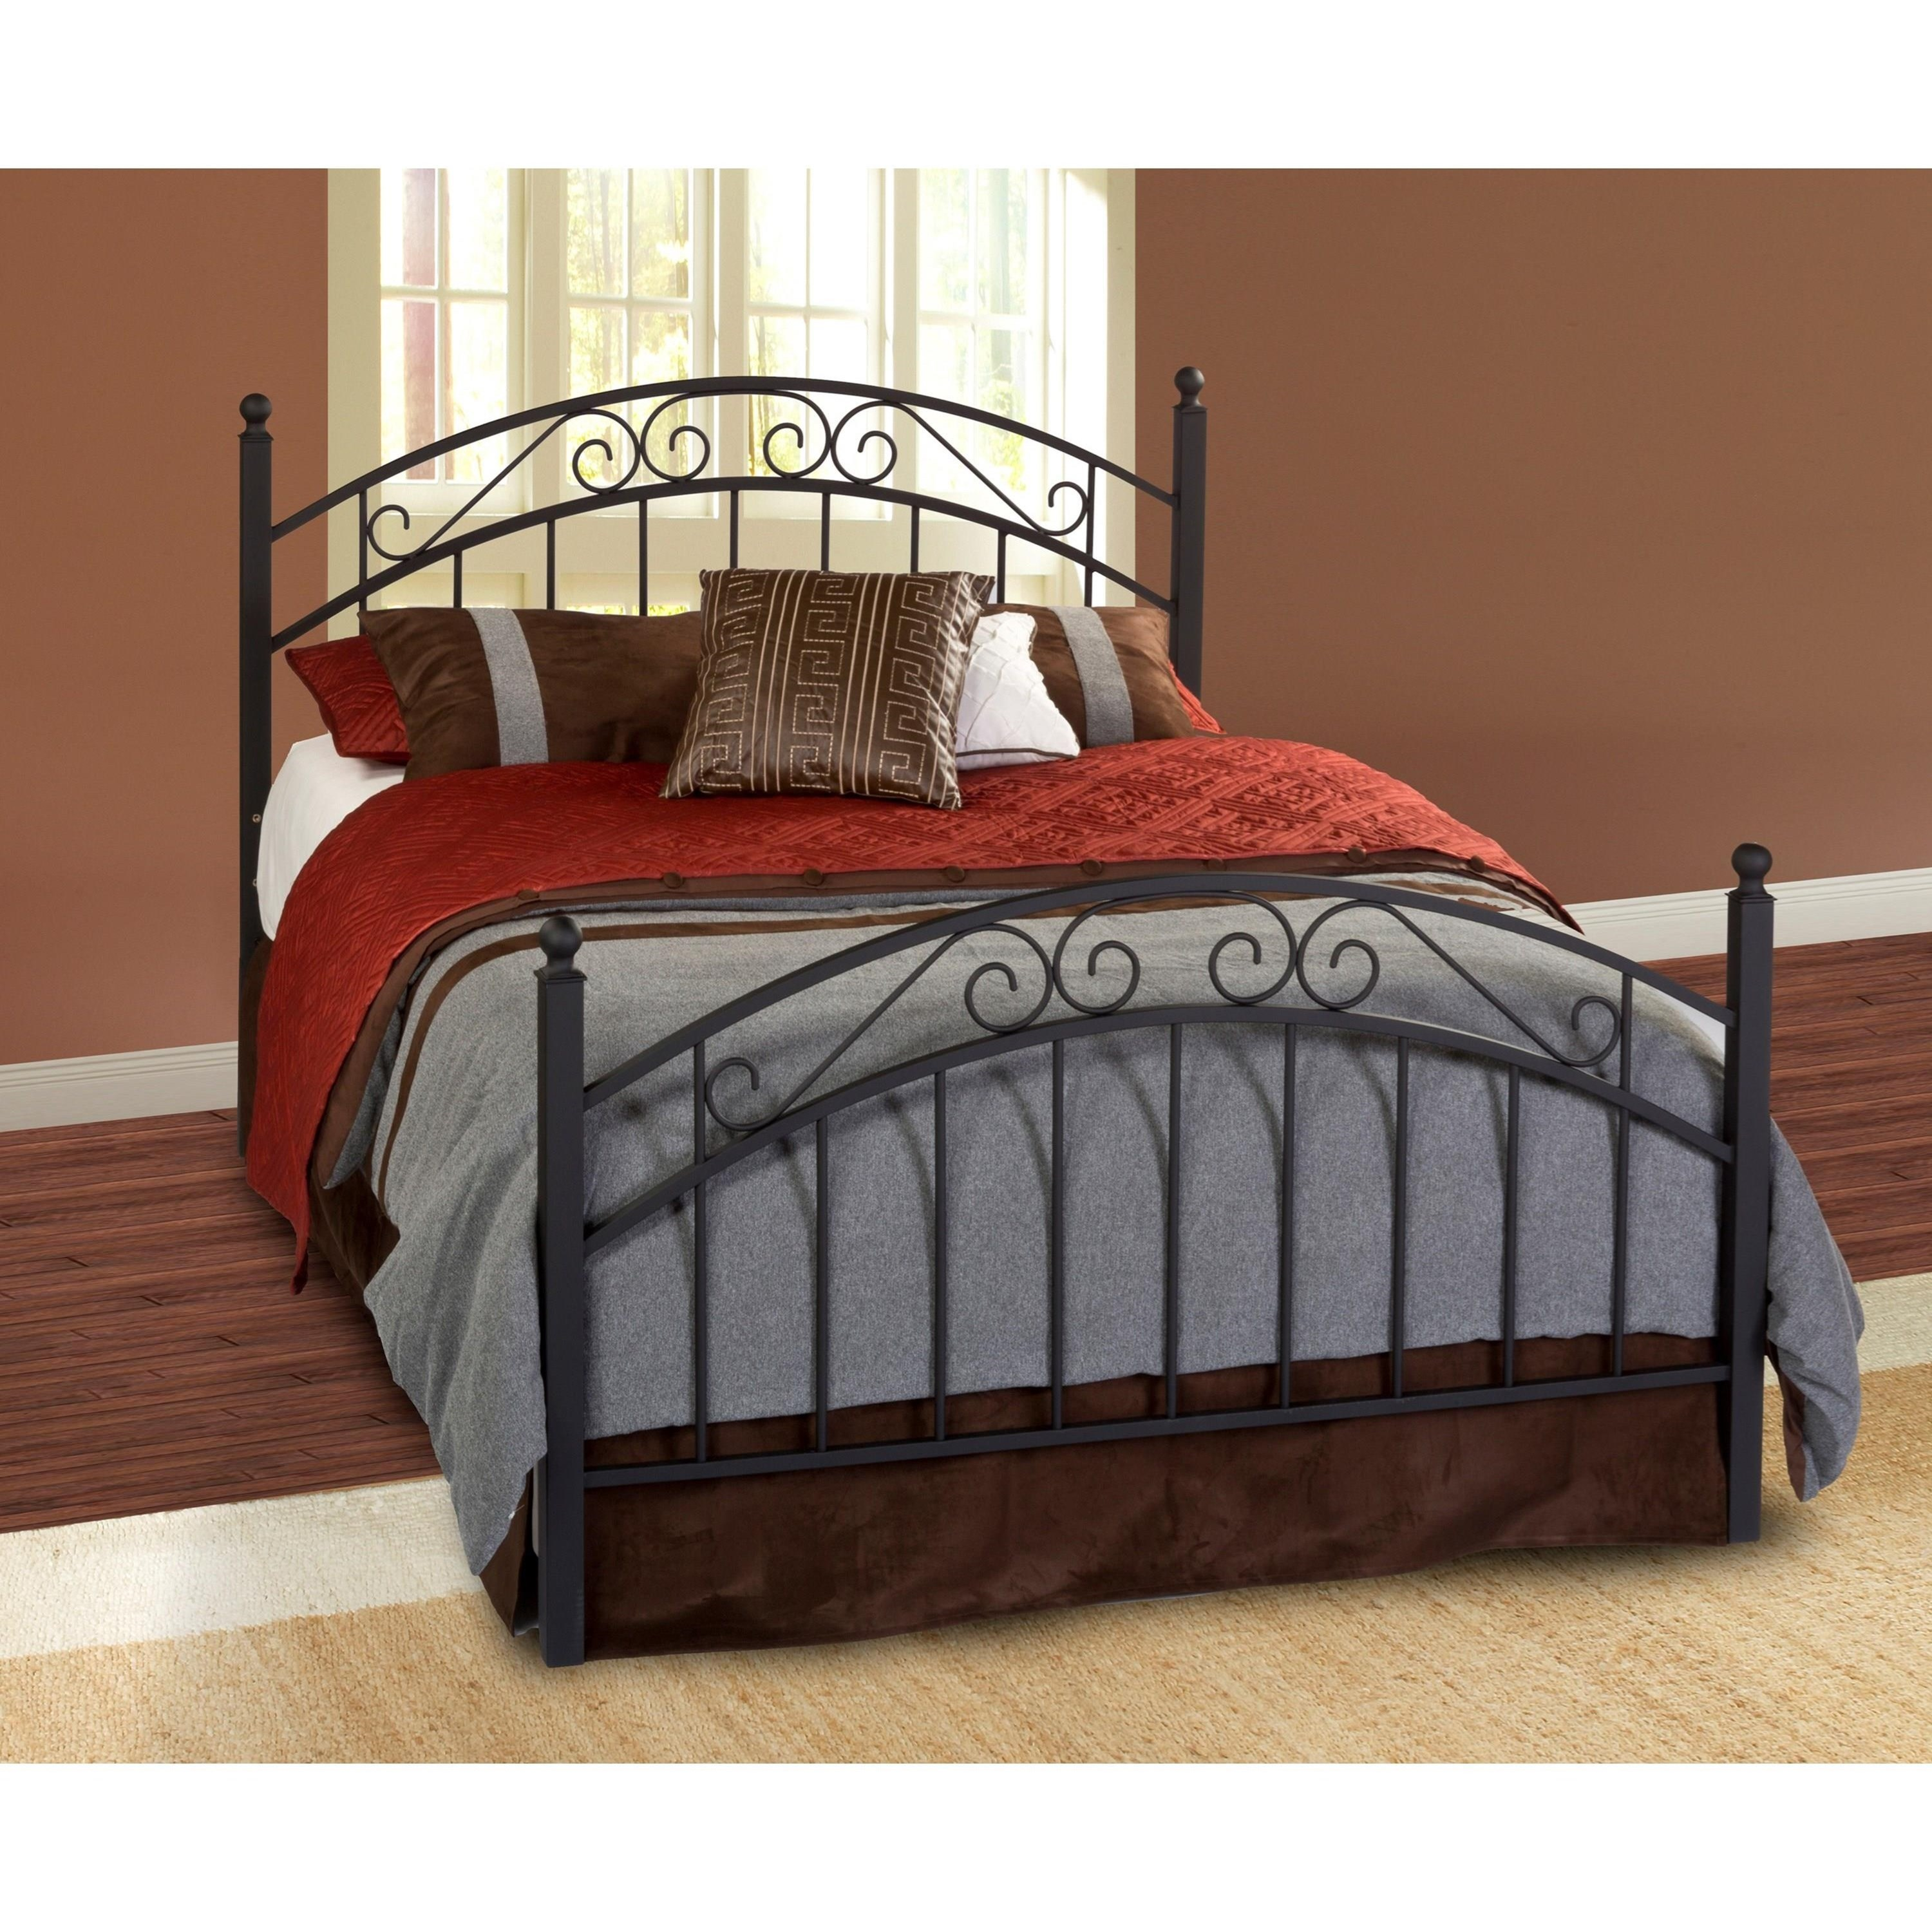 Hillsdale Metal Beds Full Willow Bed Set - Item Number: 1140BF